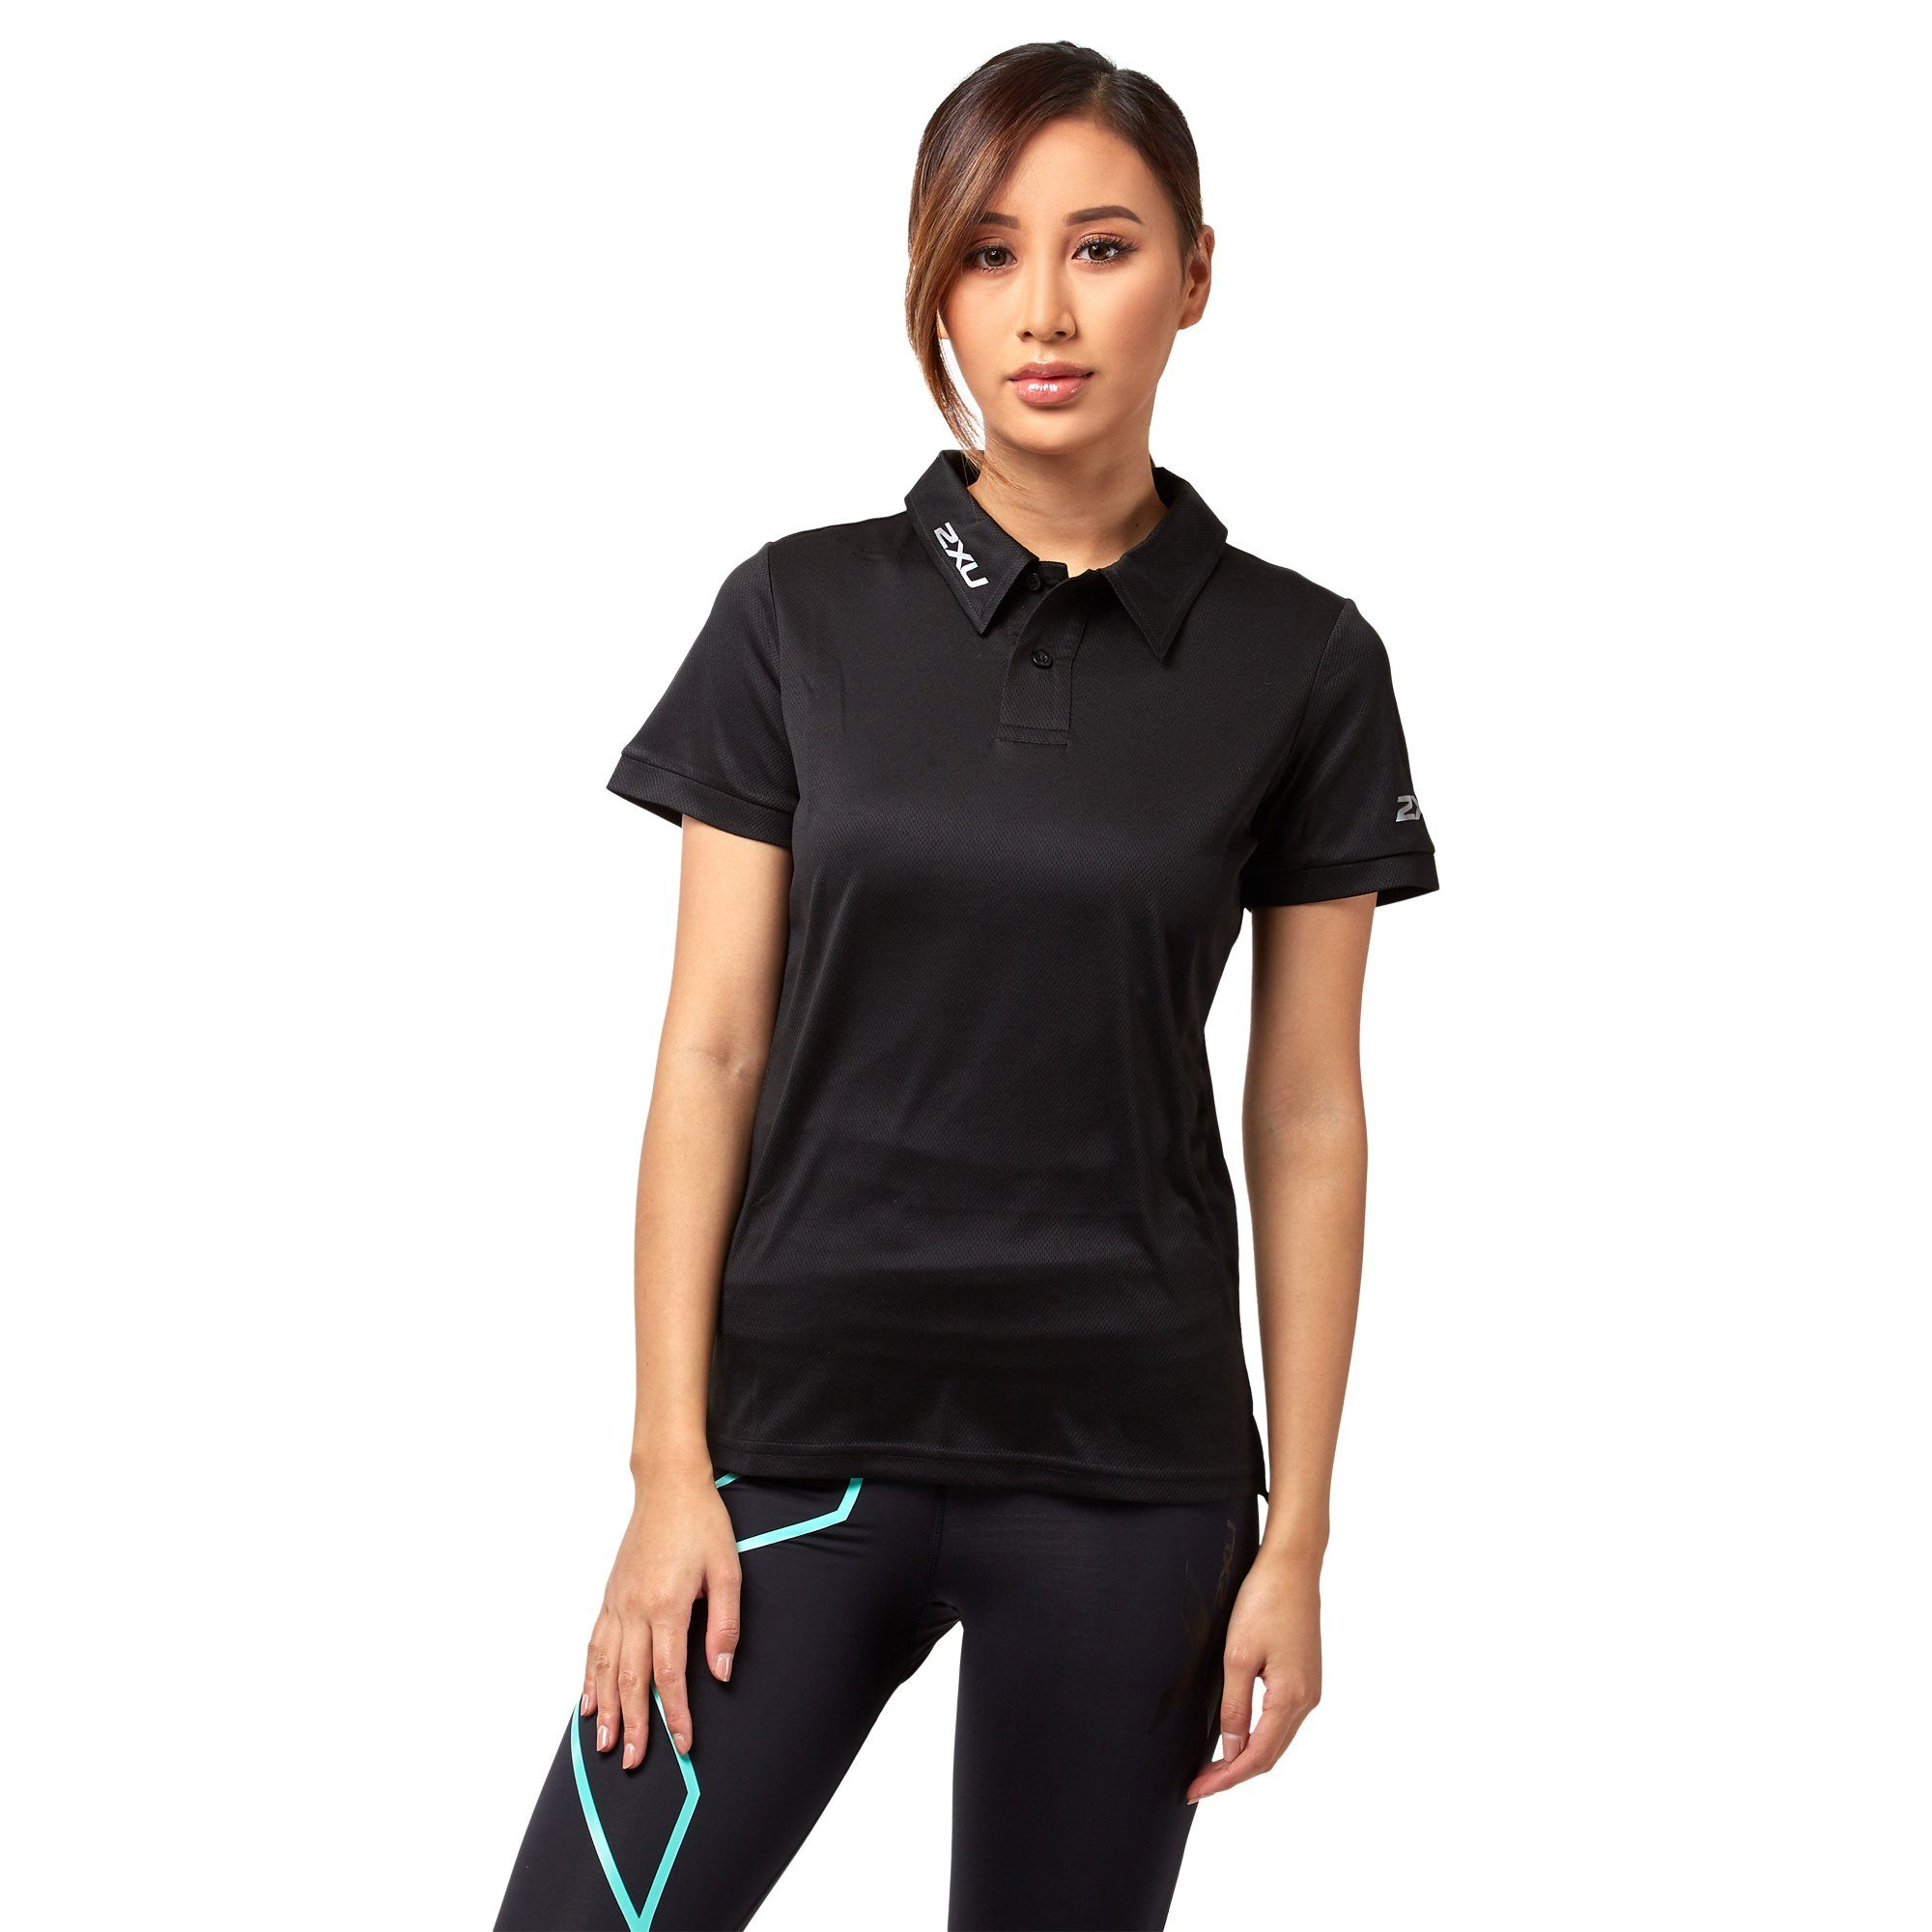 2XU Women's Performance Polo - Black Apparel 2XU  (2019203285051)